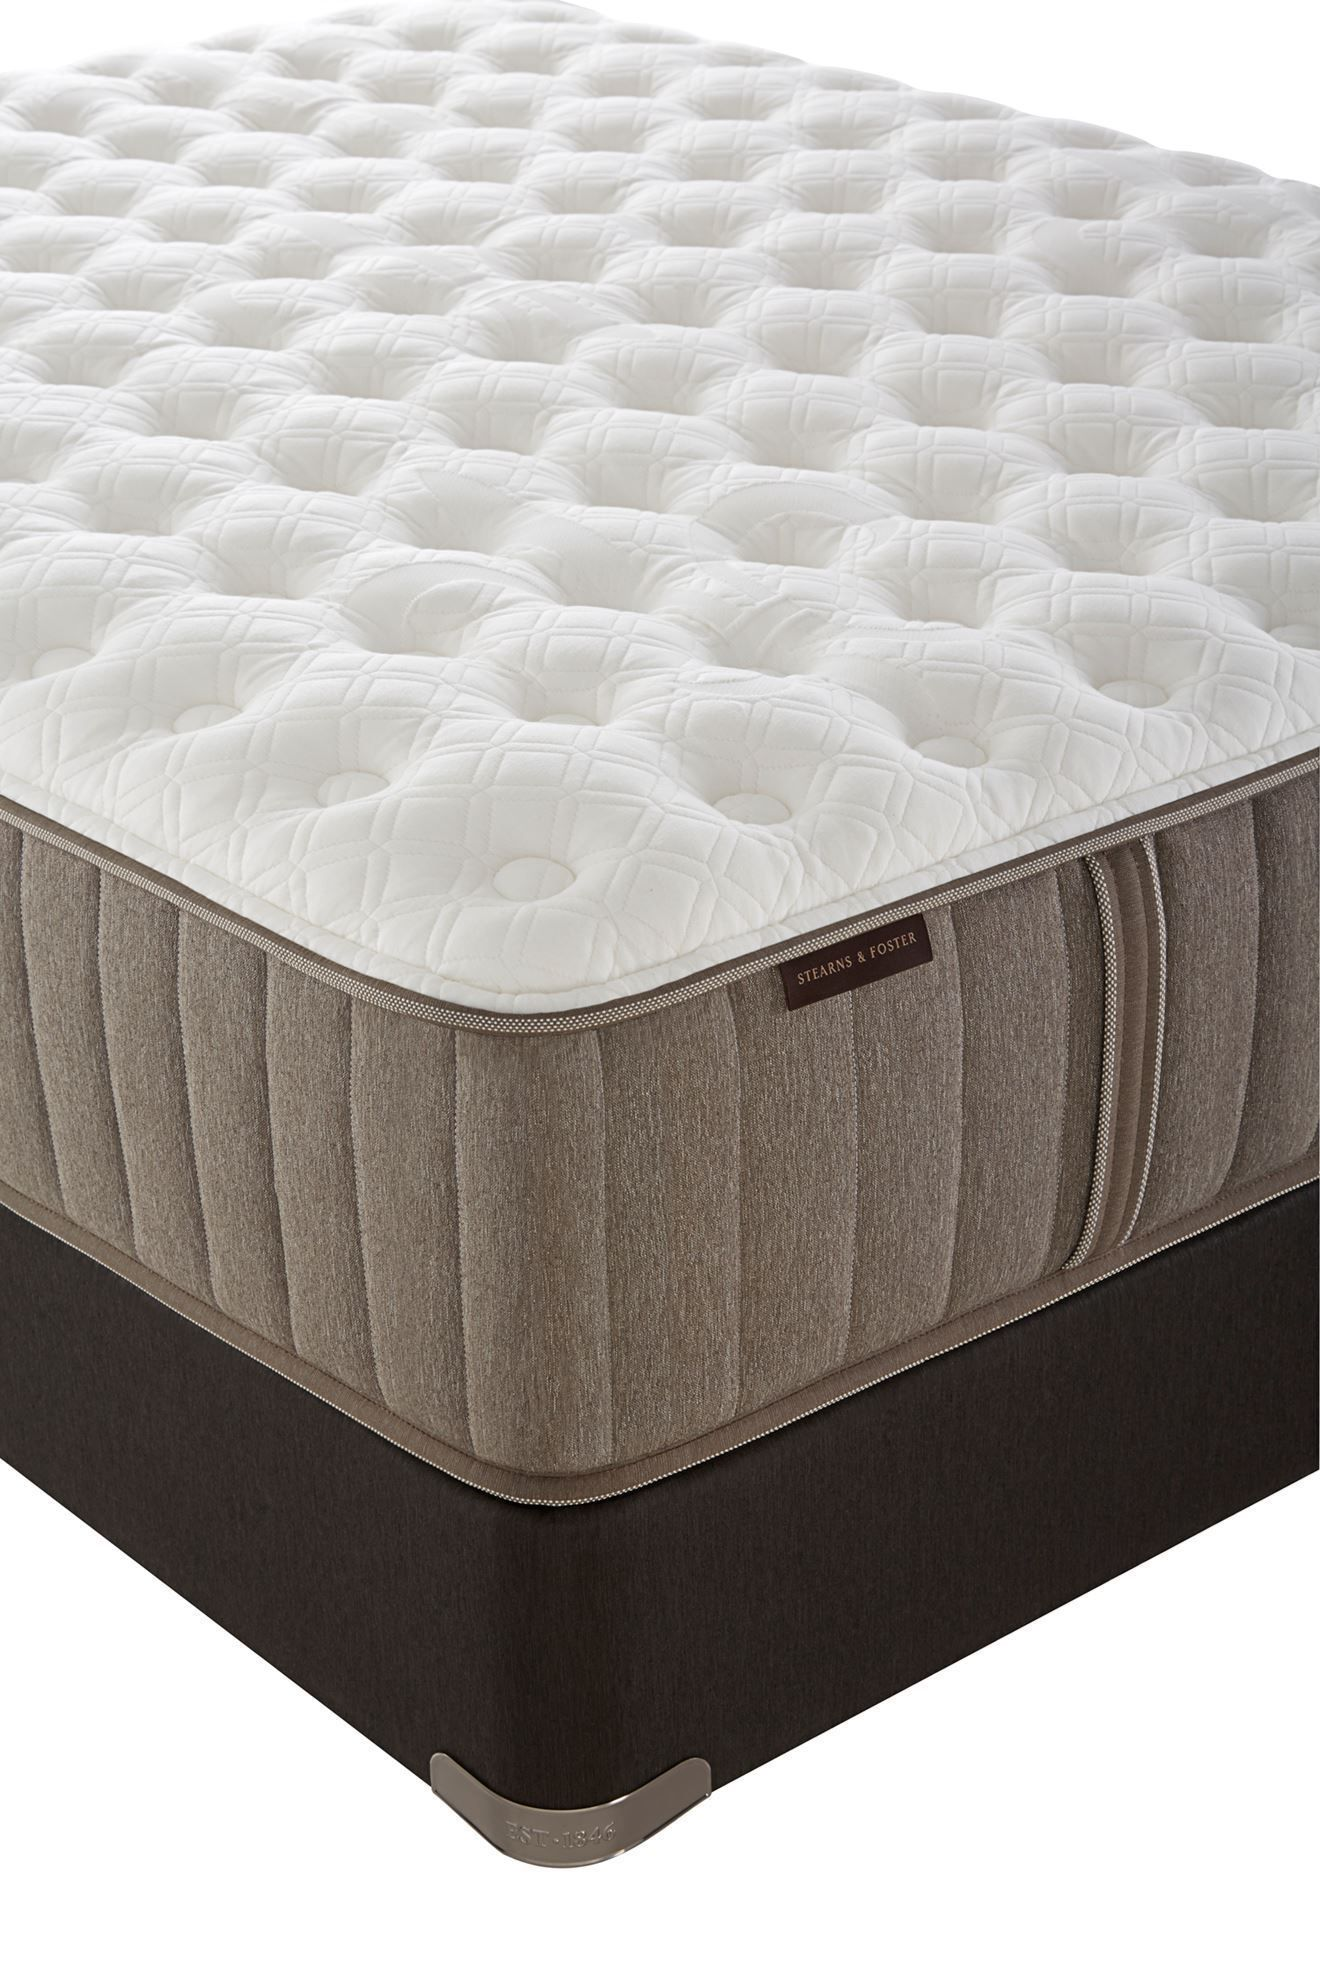 Picture of Stearns & Foster Scarborough Plush Pillowtop Queen Flat Foundation Set